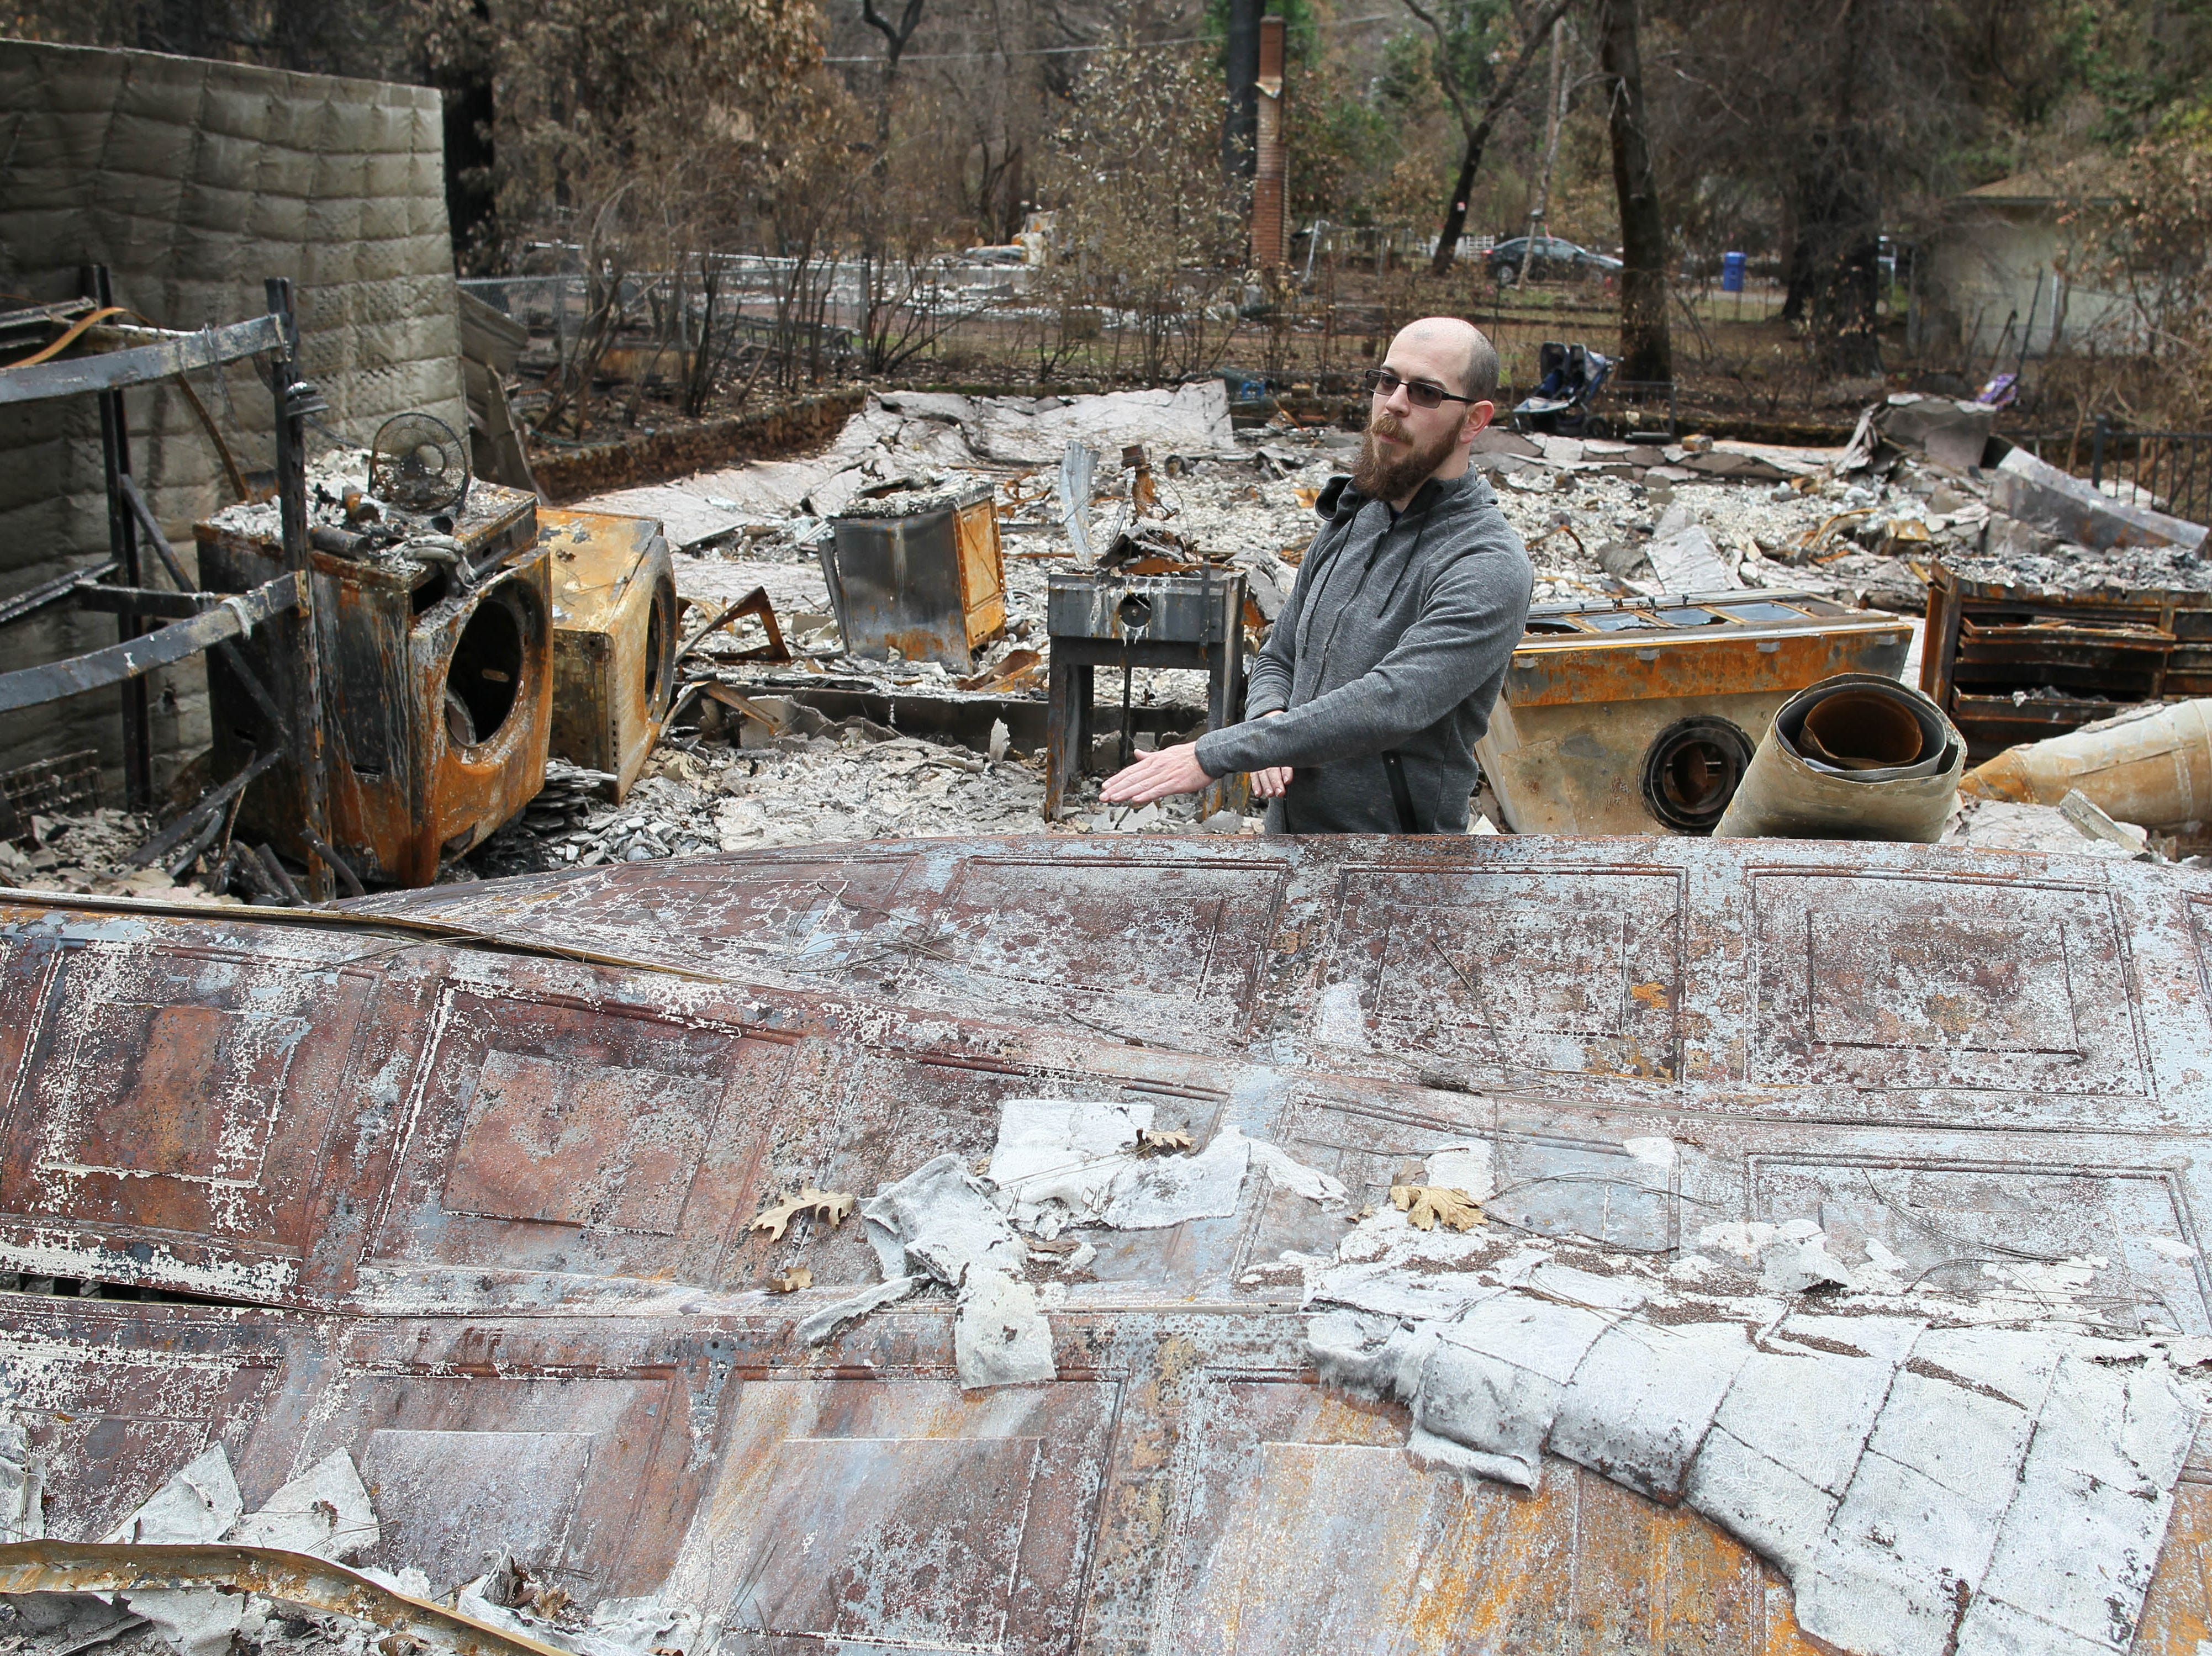 Tuesday: Jared Wilson returns to the remains of his burned Paradise home for the first time since the Camp Fire destroyed it.